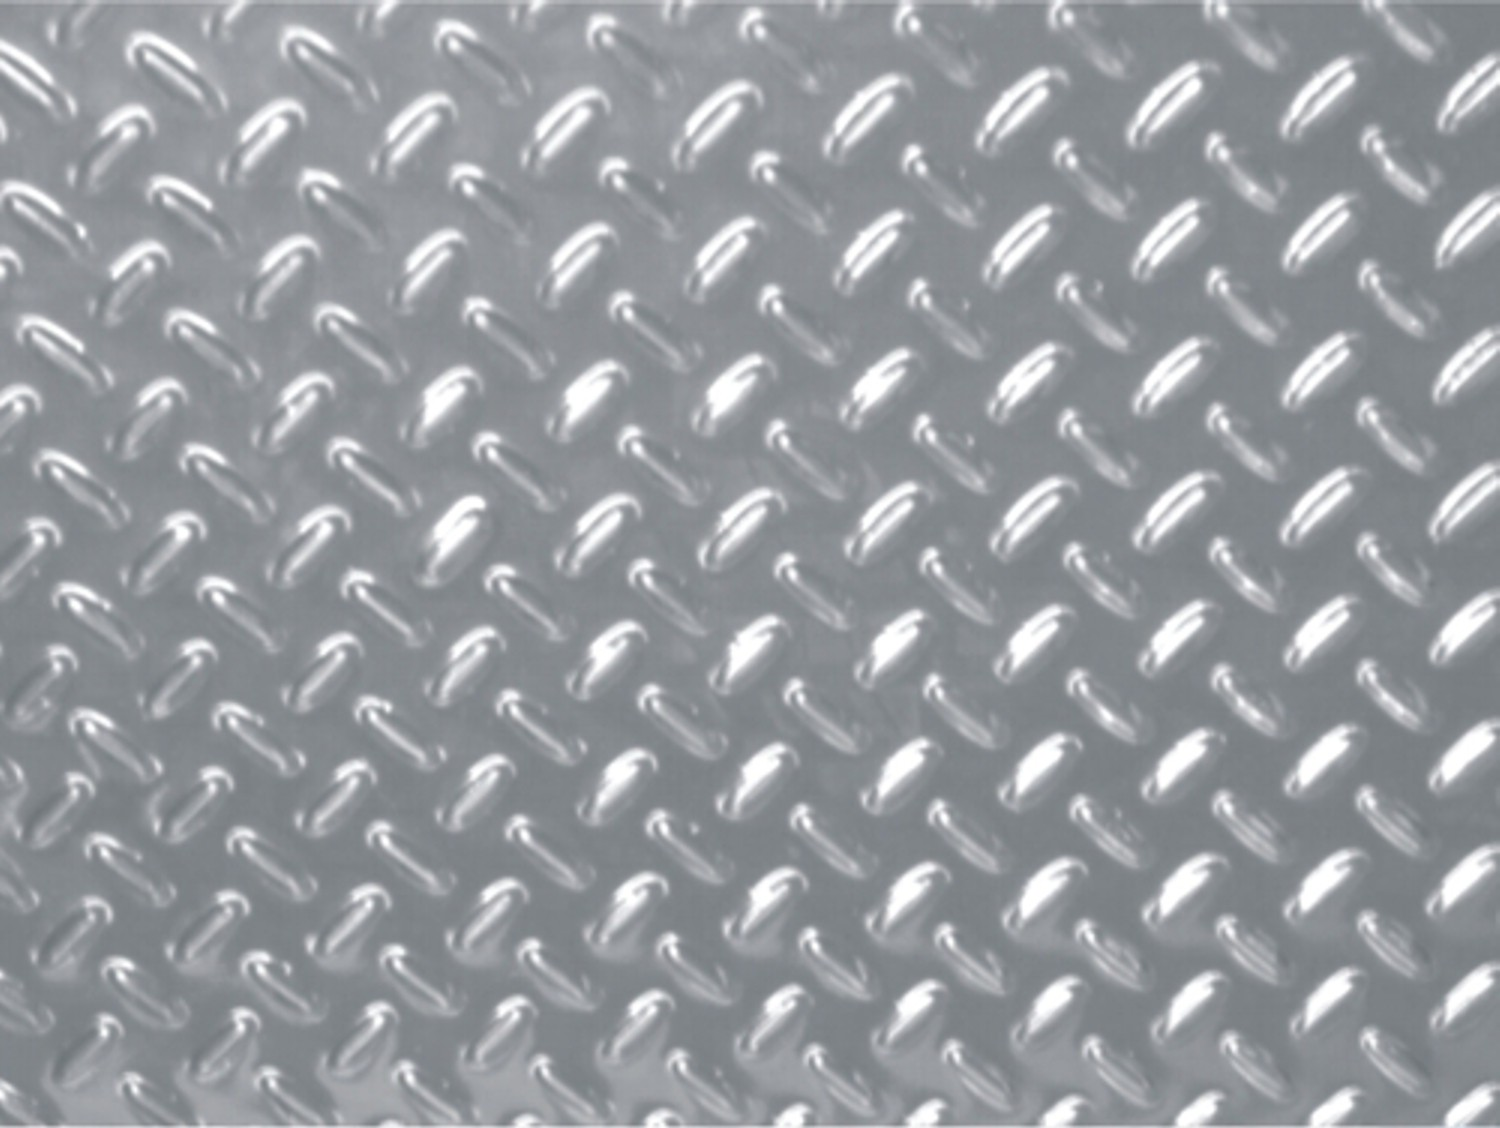 Aluminium-optics-floor mat double dagger metal 1100 x 650 mm – Bild 1